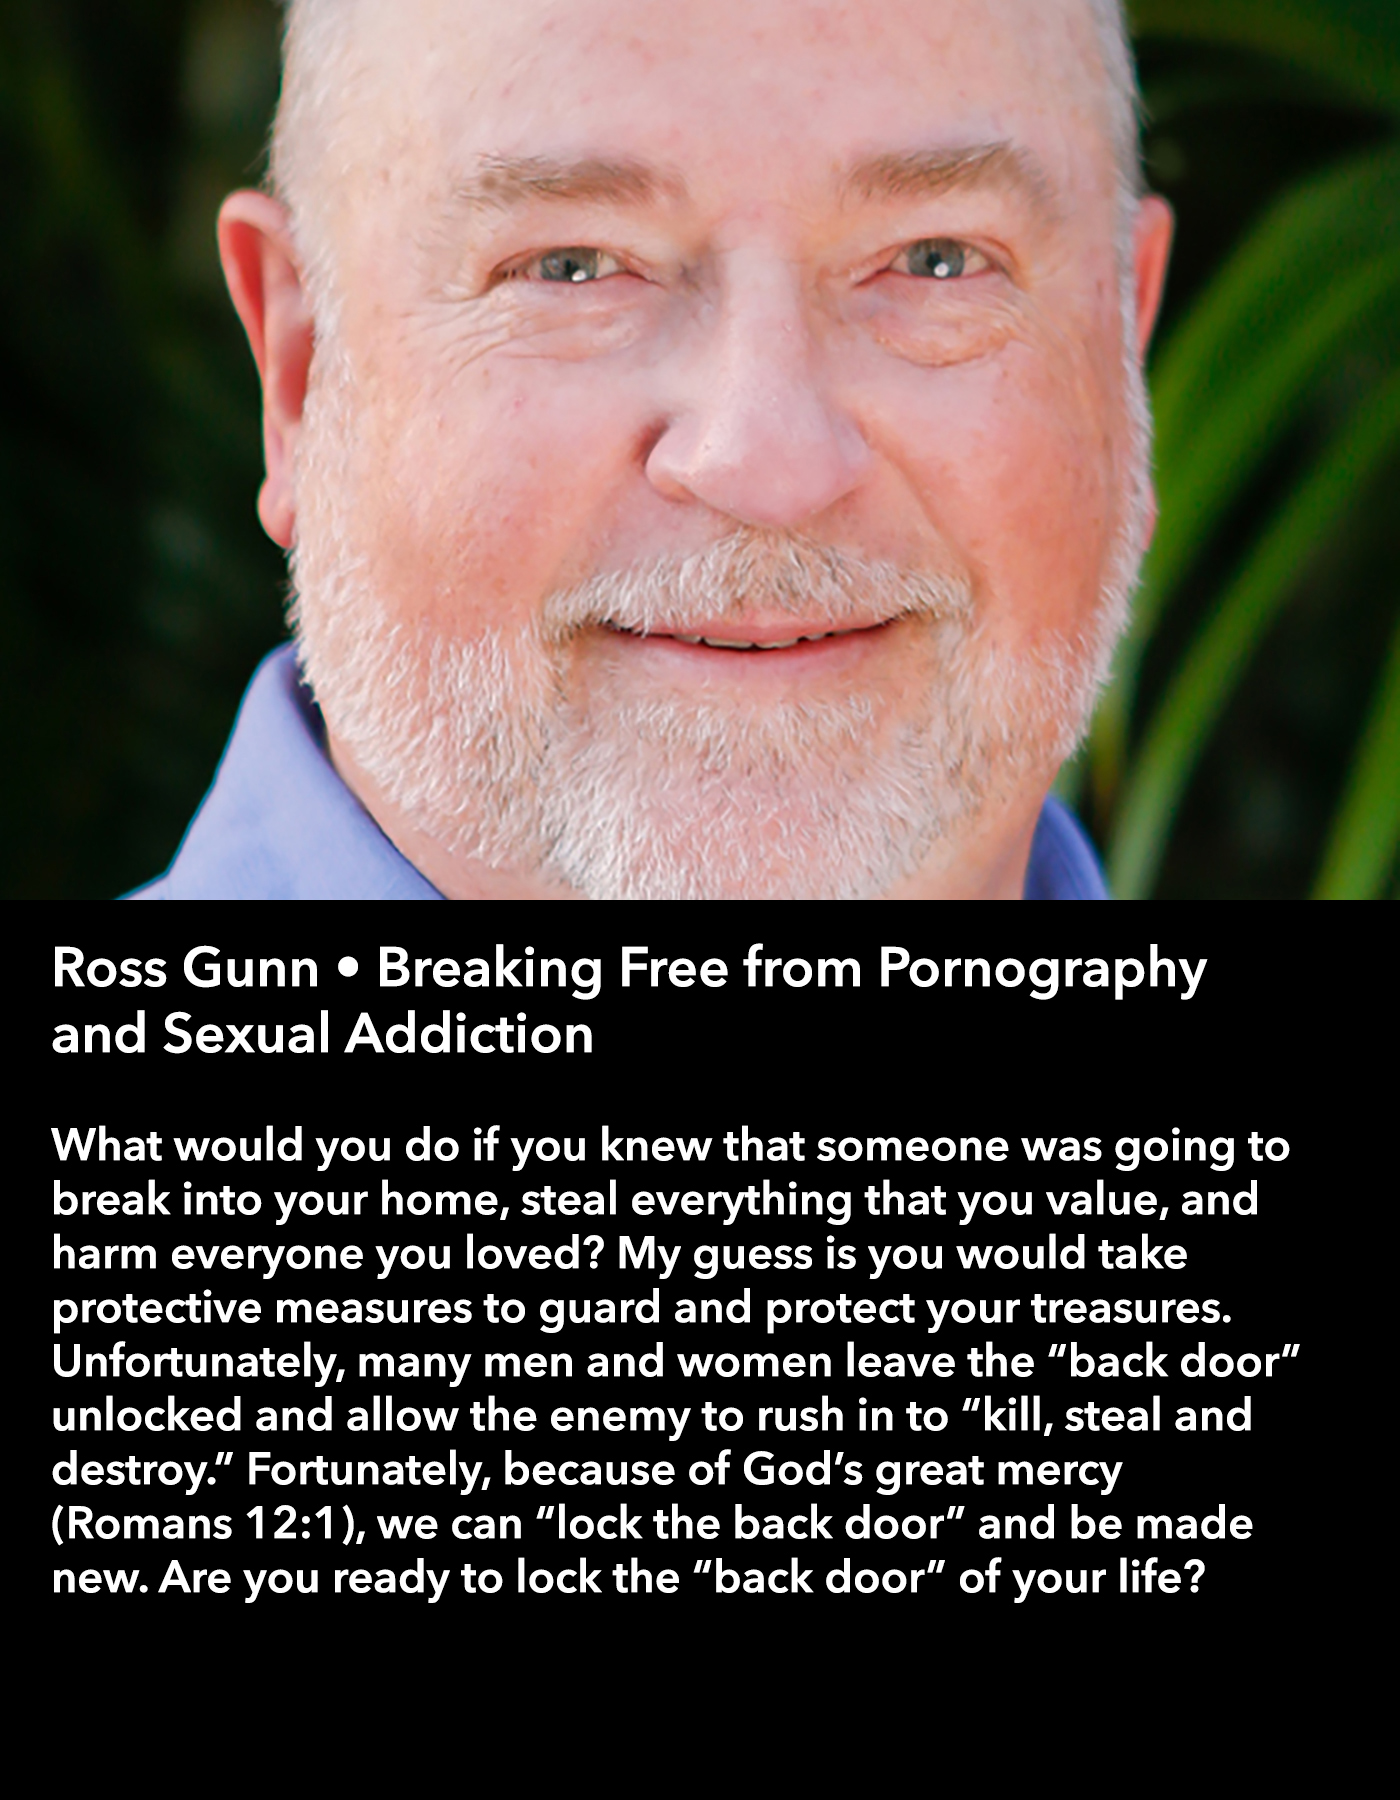 Ross Gunn • Breaking Free from Pornography and Sexual Addiction • Friday Night, March 17 • 8:30 – 9:45 pm